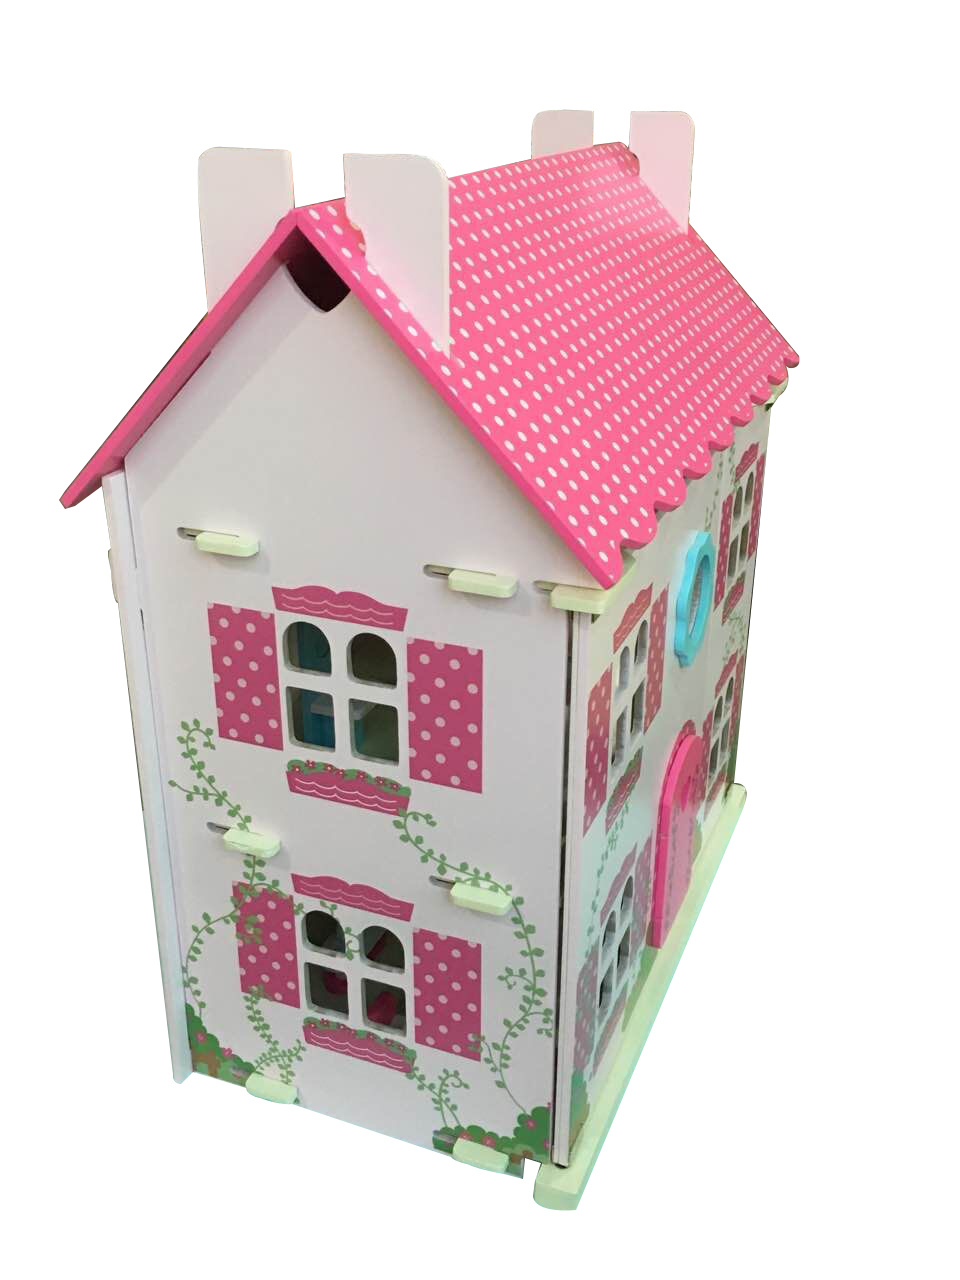 Wooden Pink Doll House Toy for Kids and Children